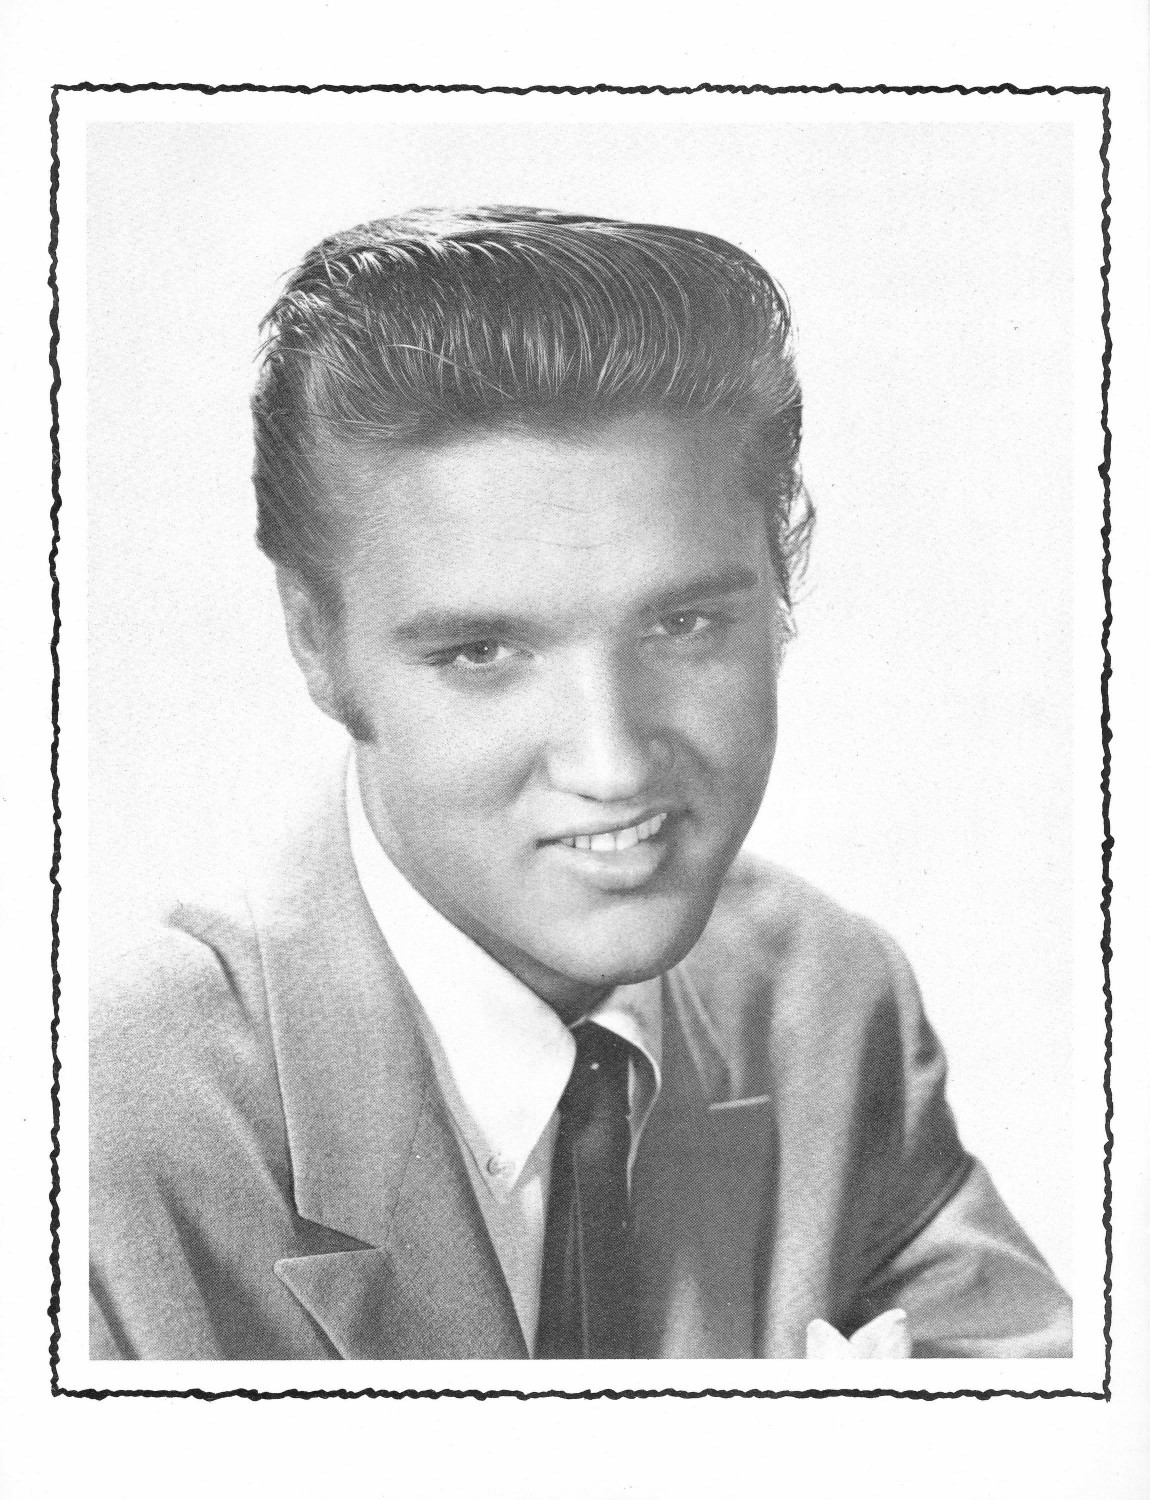 Elvis Presley Souvenir Photo Album (Juan Luis) 08